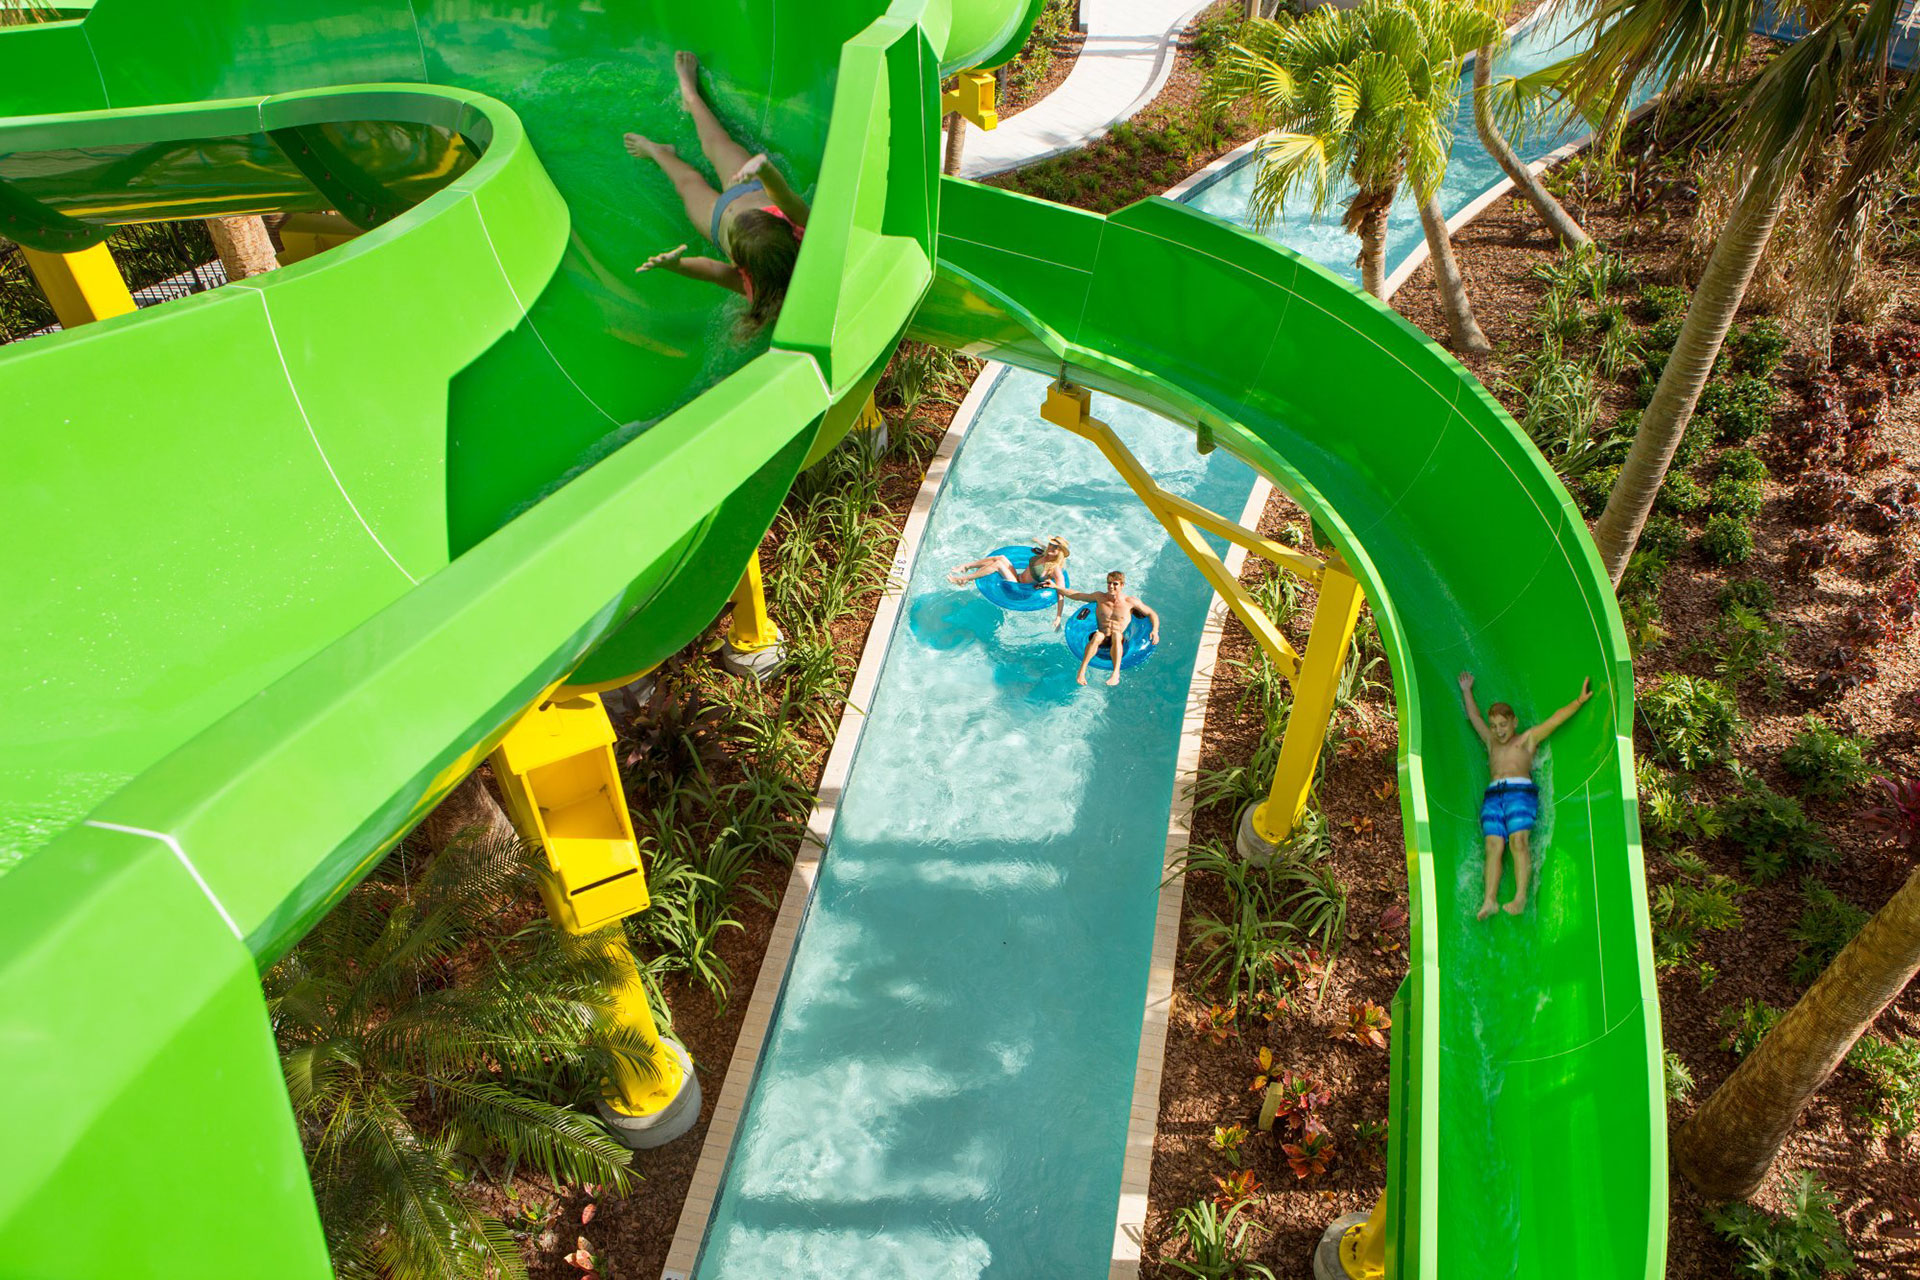 Waterslides at The Grove Resort Orlando; Courtesy of The Grove Resort Orlando